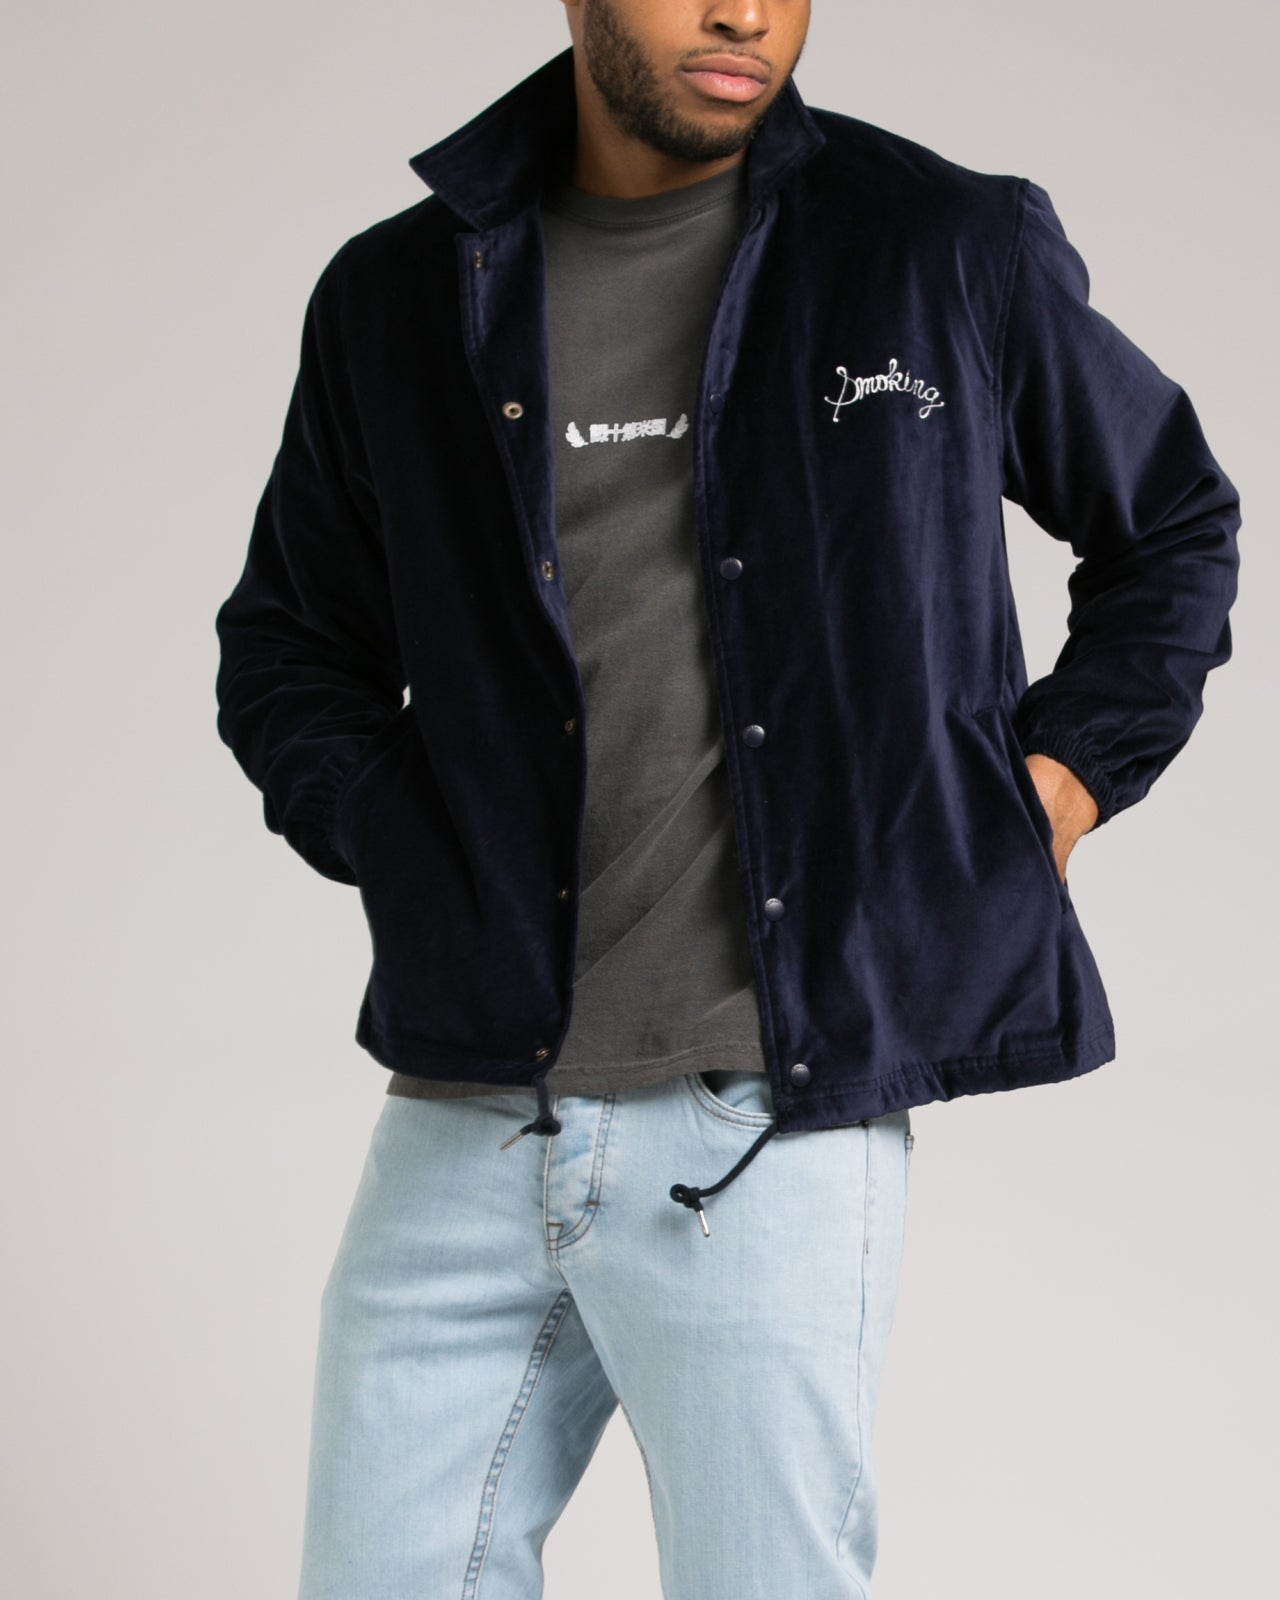 Smokers Jacket - Color: Navy | Blue